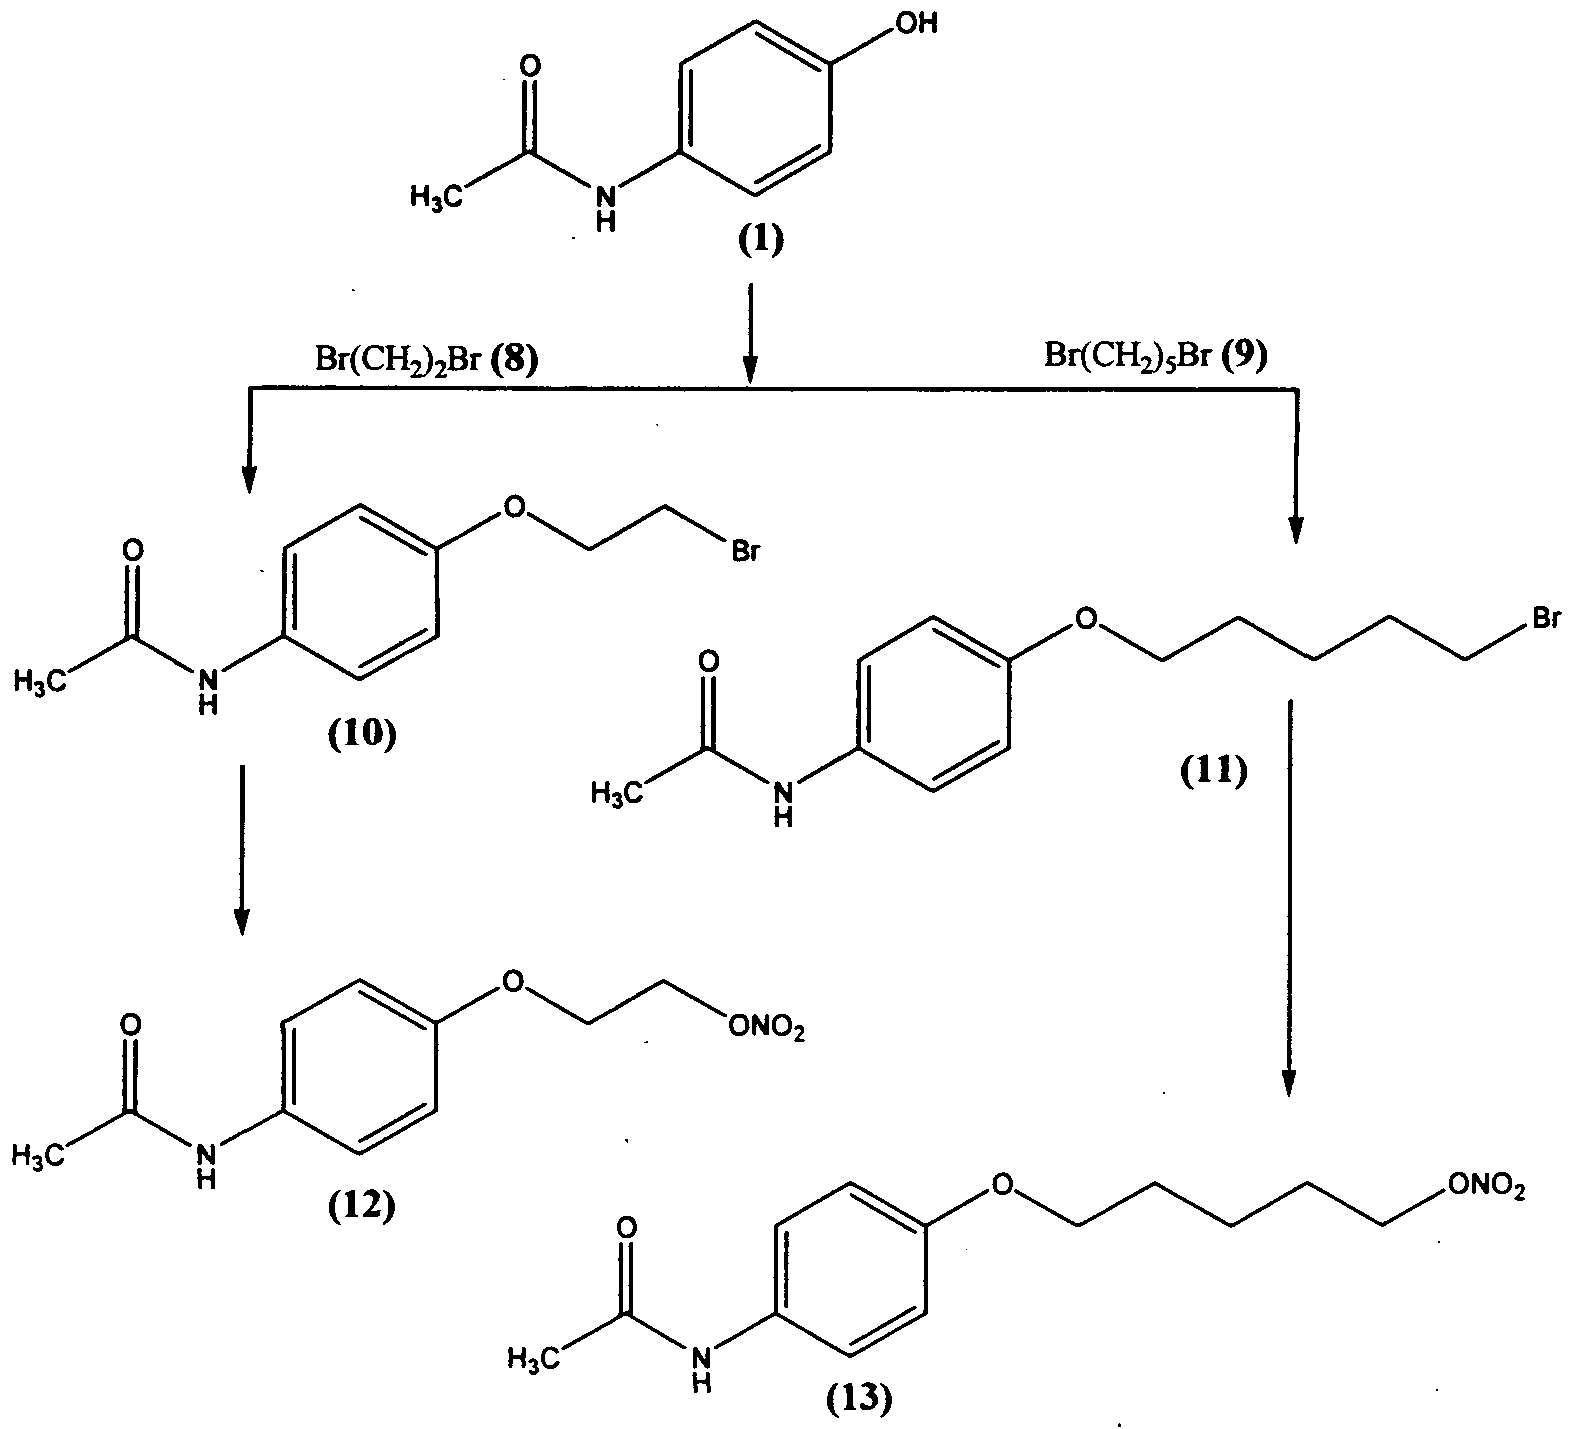 synthesis of acetaminophen Title and authors: a three­step synthesis of acetaminophen korto gayflor­kpanaku amanda padilla alley poquette instructor: alexandra jones, ms.